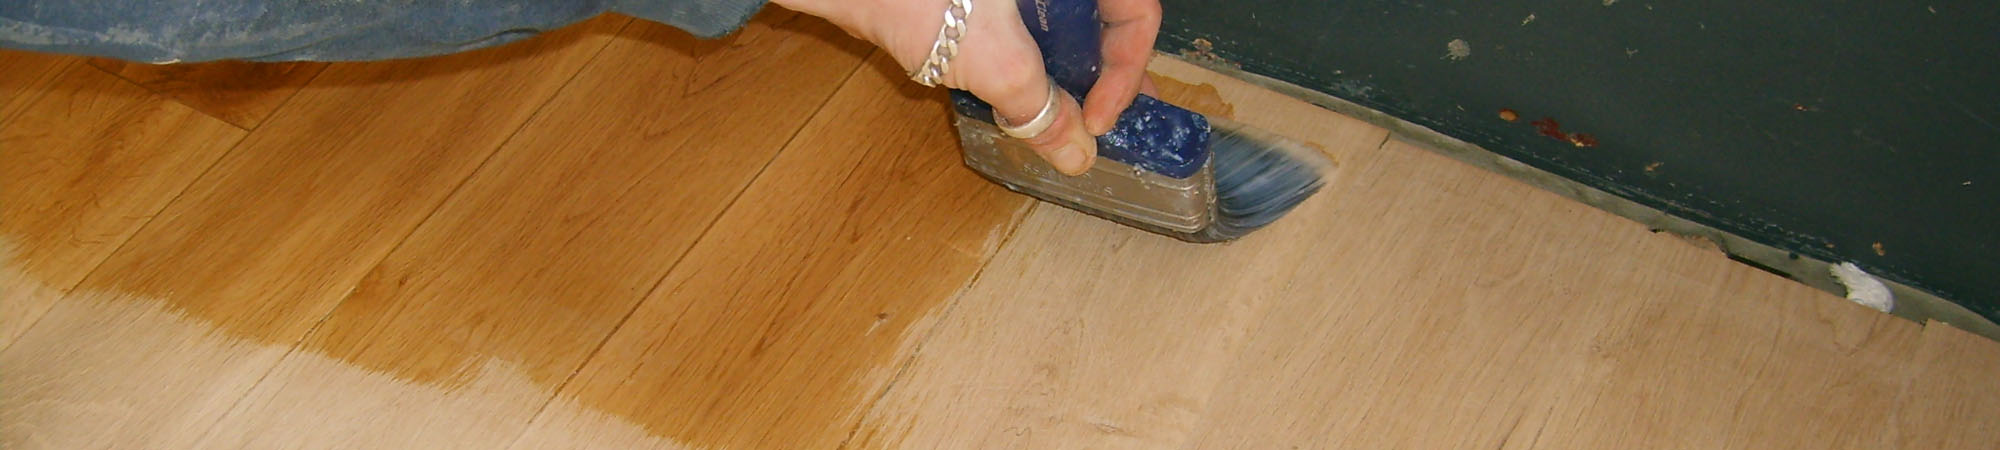 oiling wooden floors